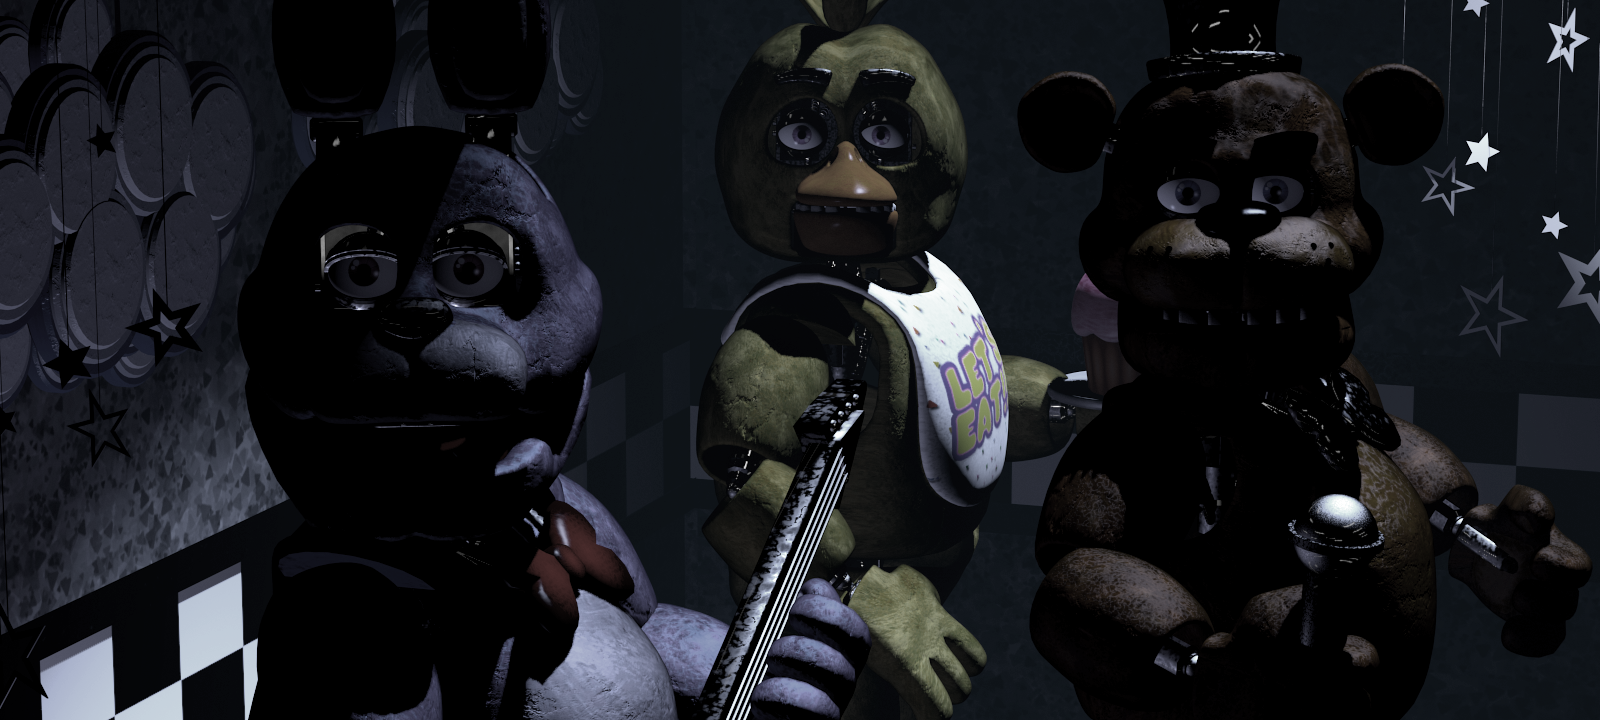 Drawing inspiration from the five nights at freddy s series david